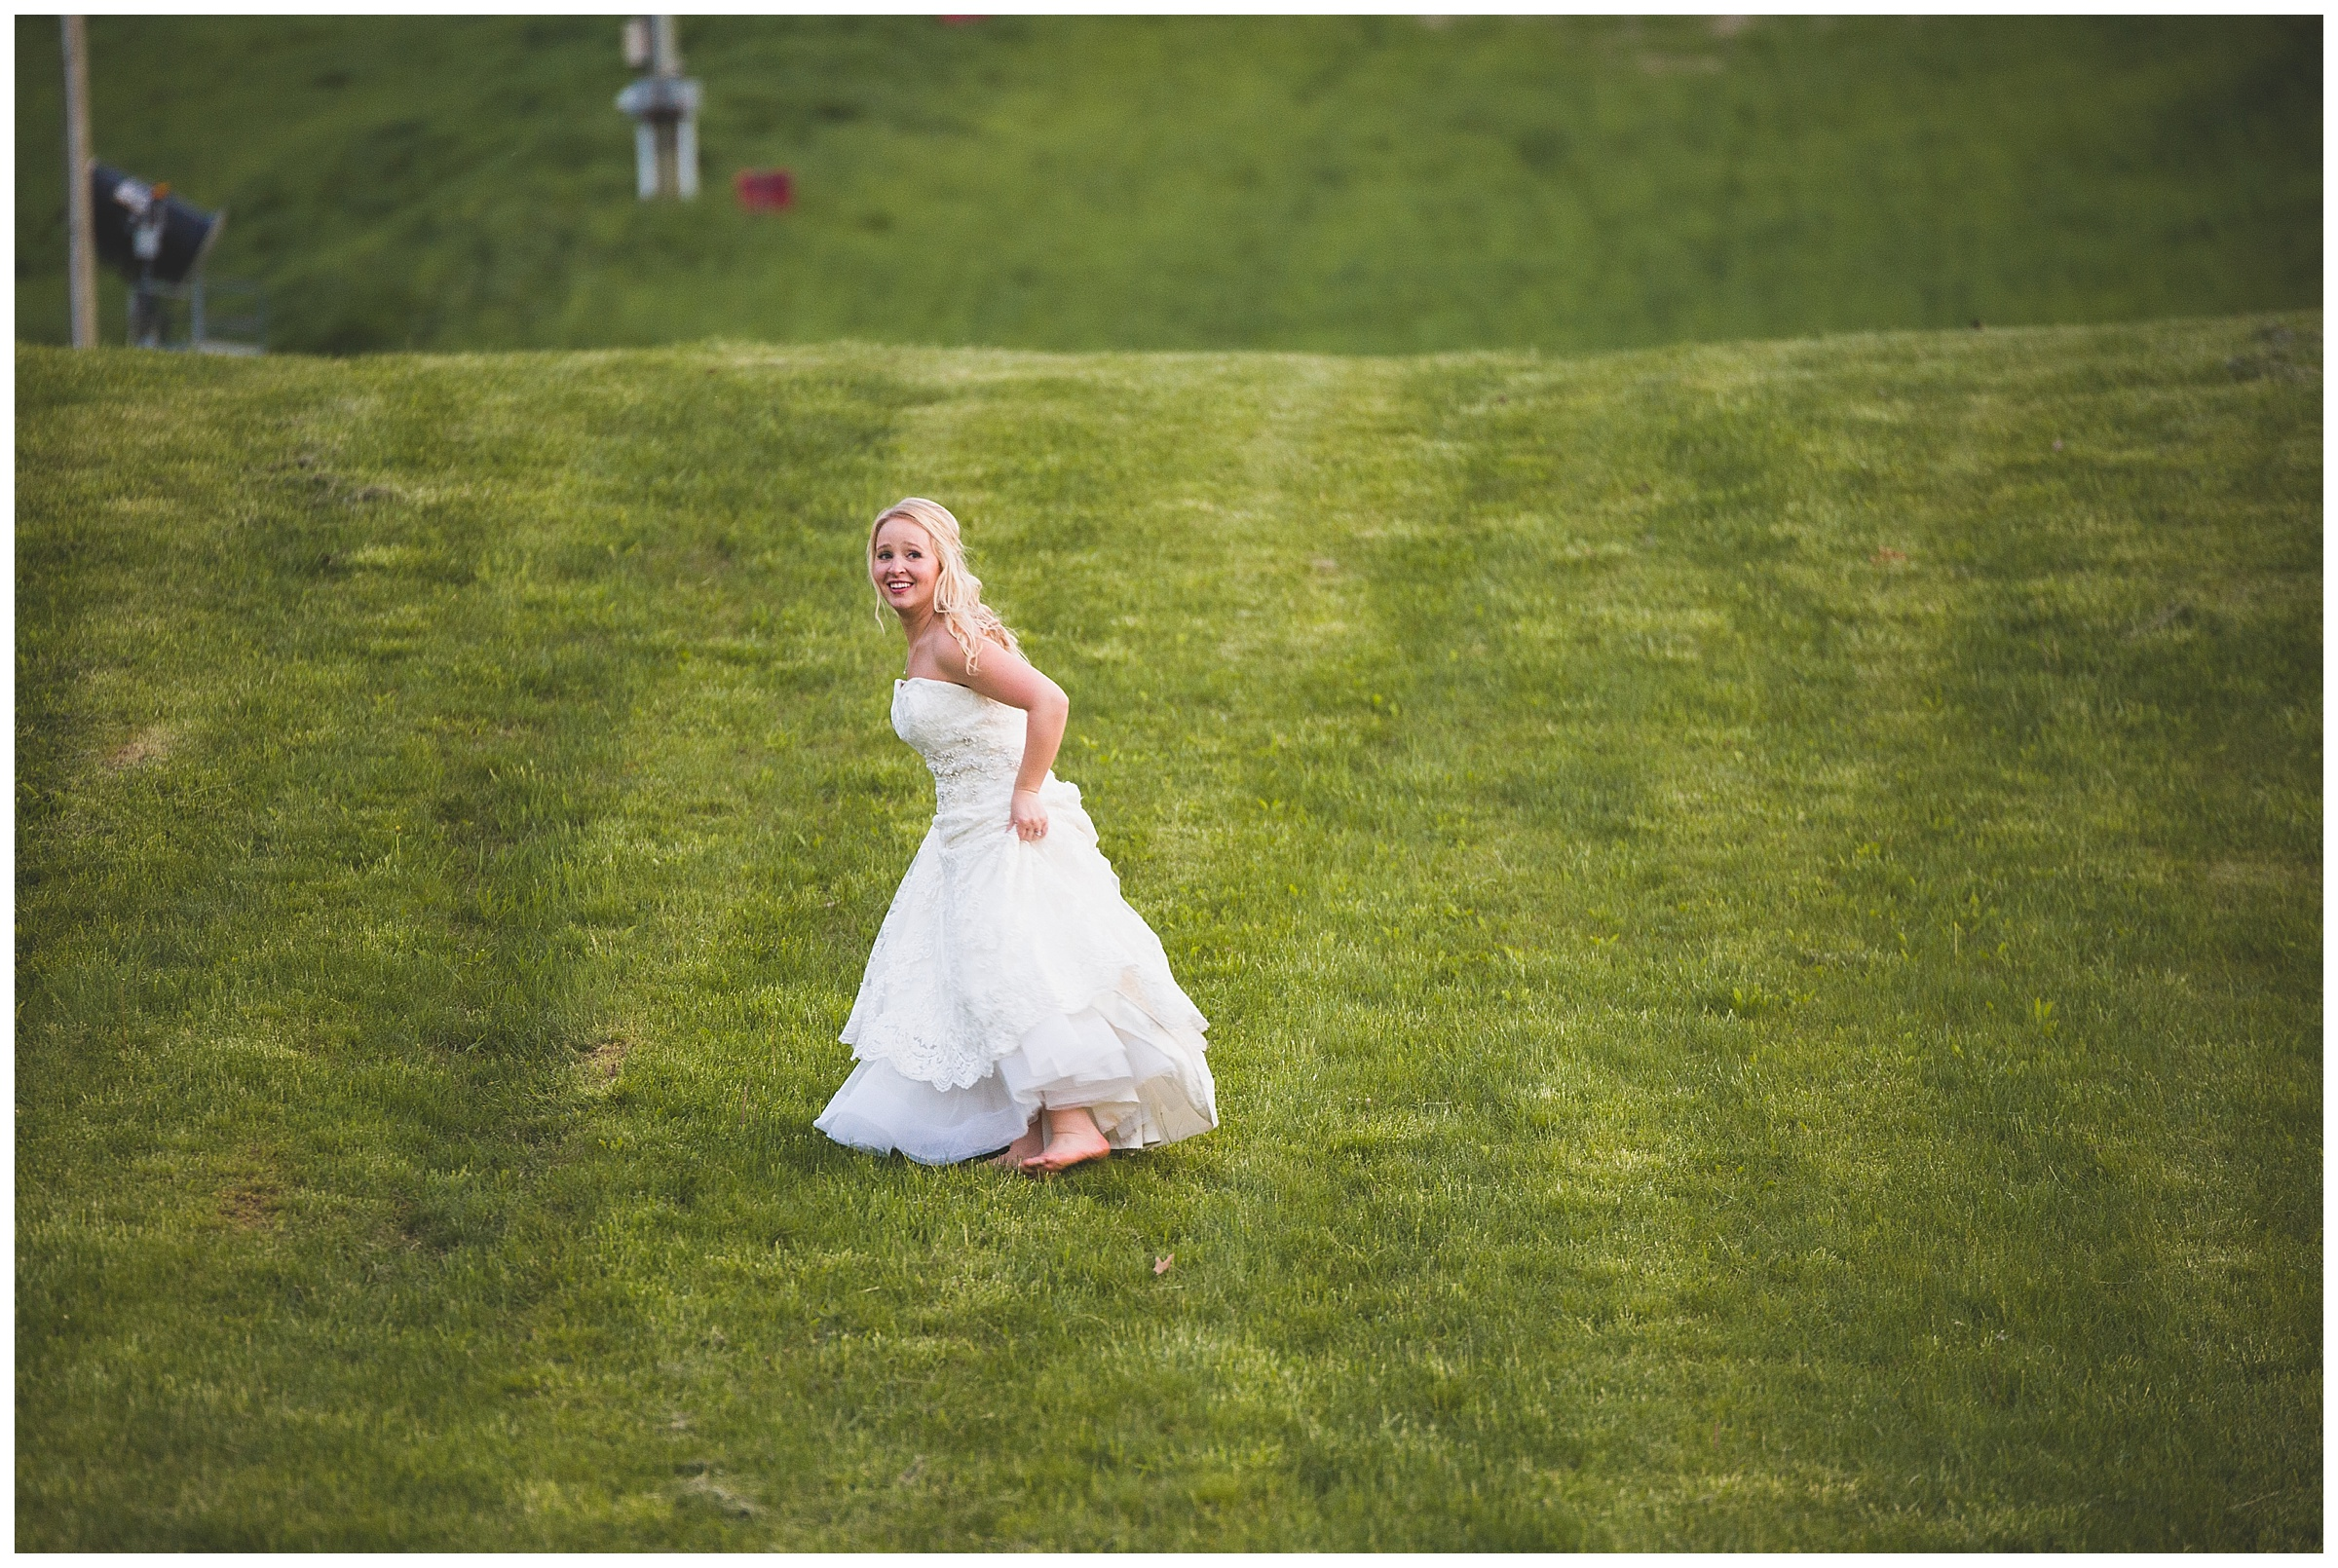 0066_Kelly and Josh's Wedding, Bear Creek Resort, PA_0066